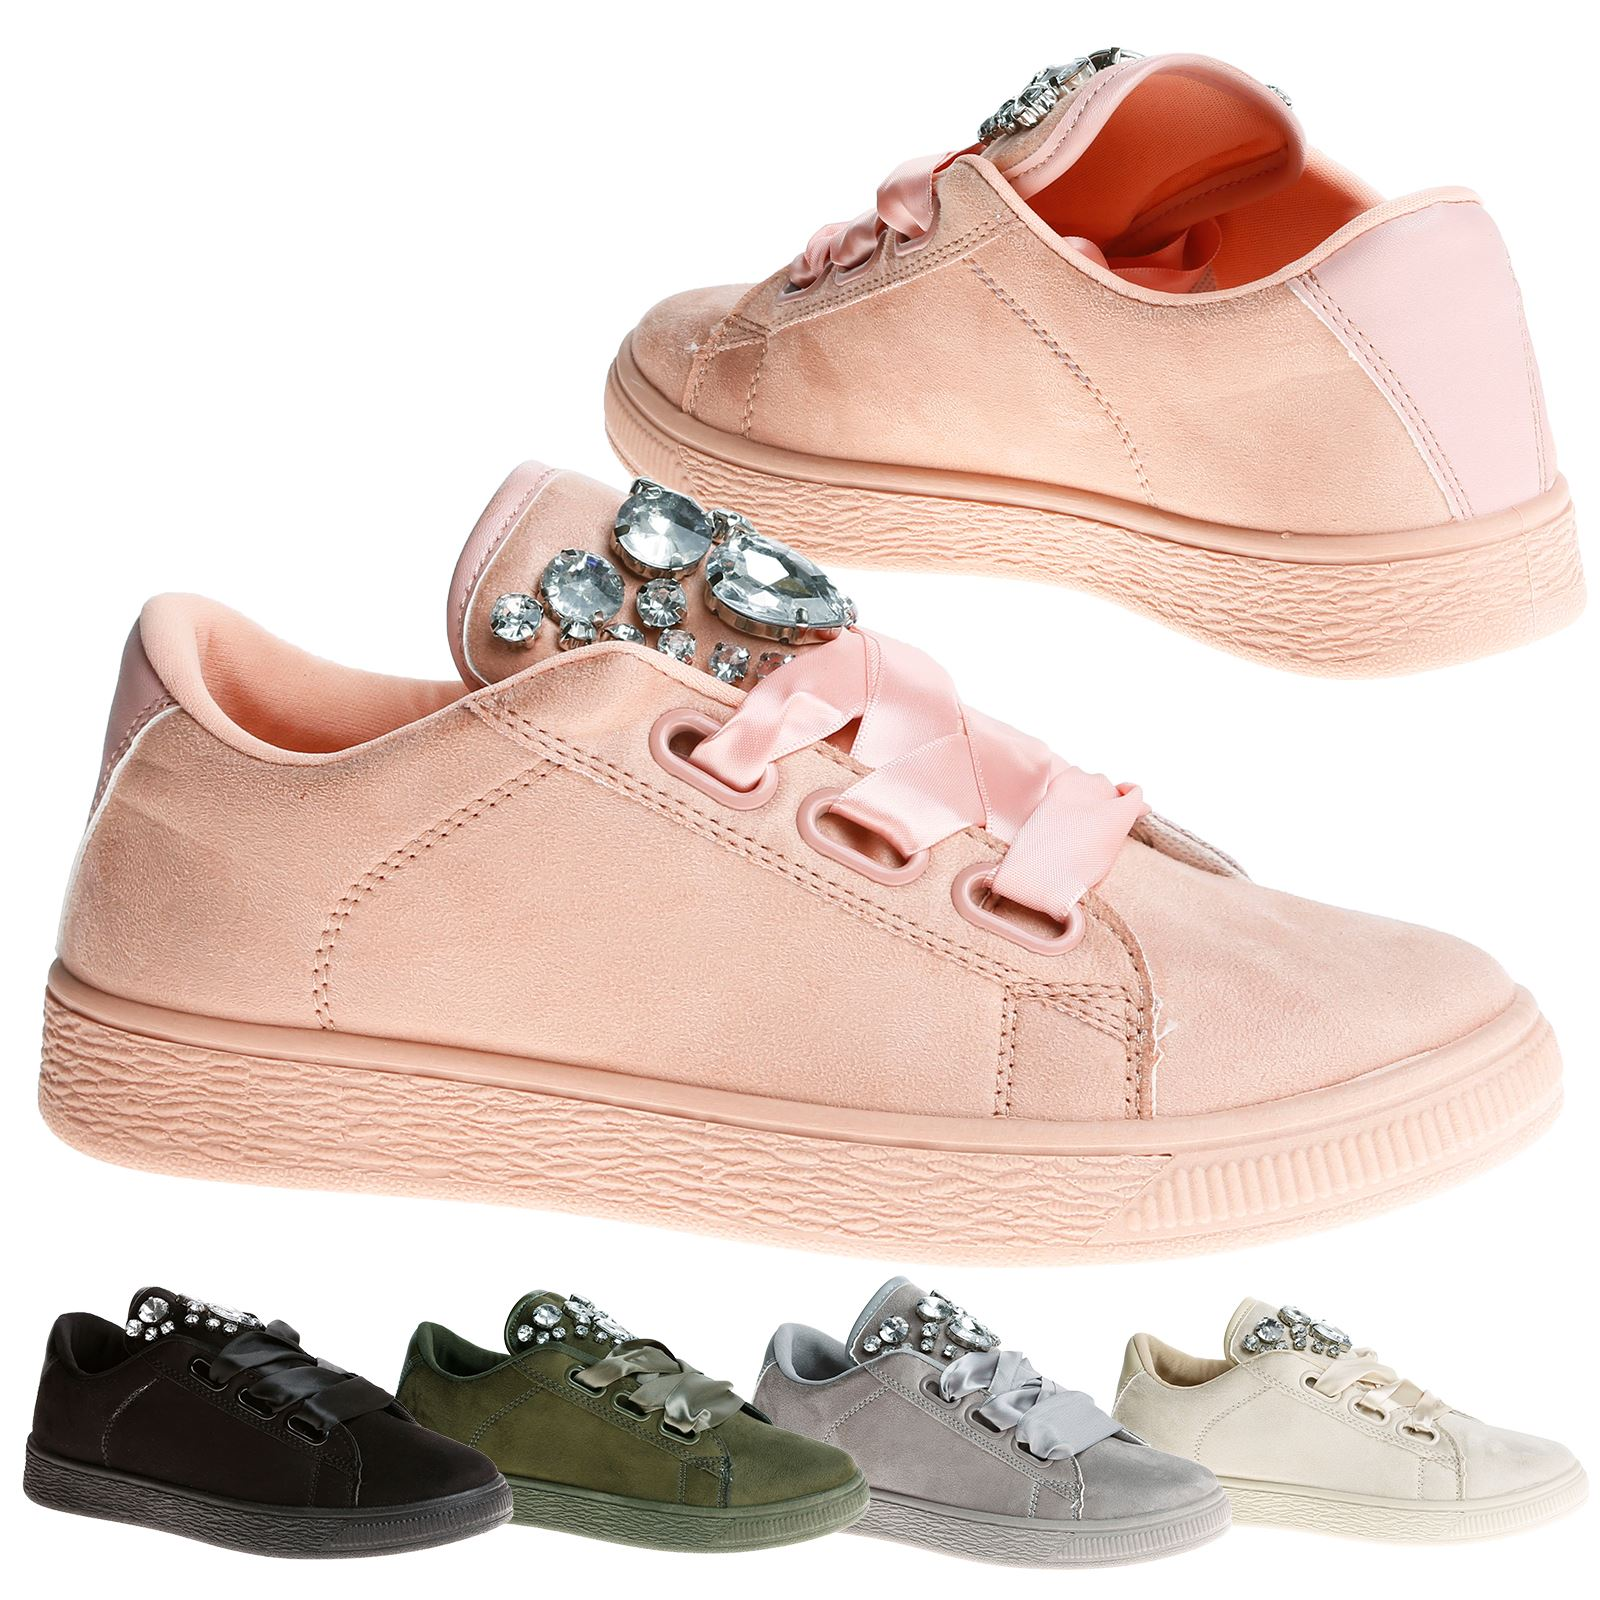 NEW LADIES WOMENS DESIGNER STYLE JEWEL LACE UP TRAINERS SNEAKERS SHOES SIZE